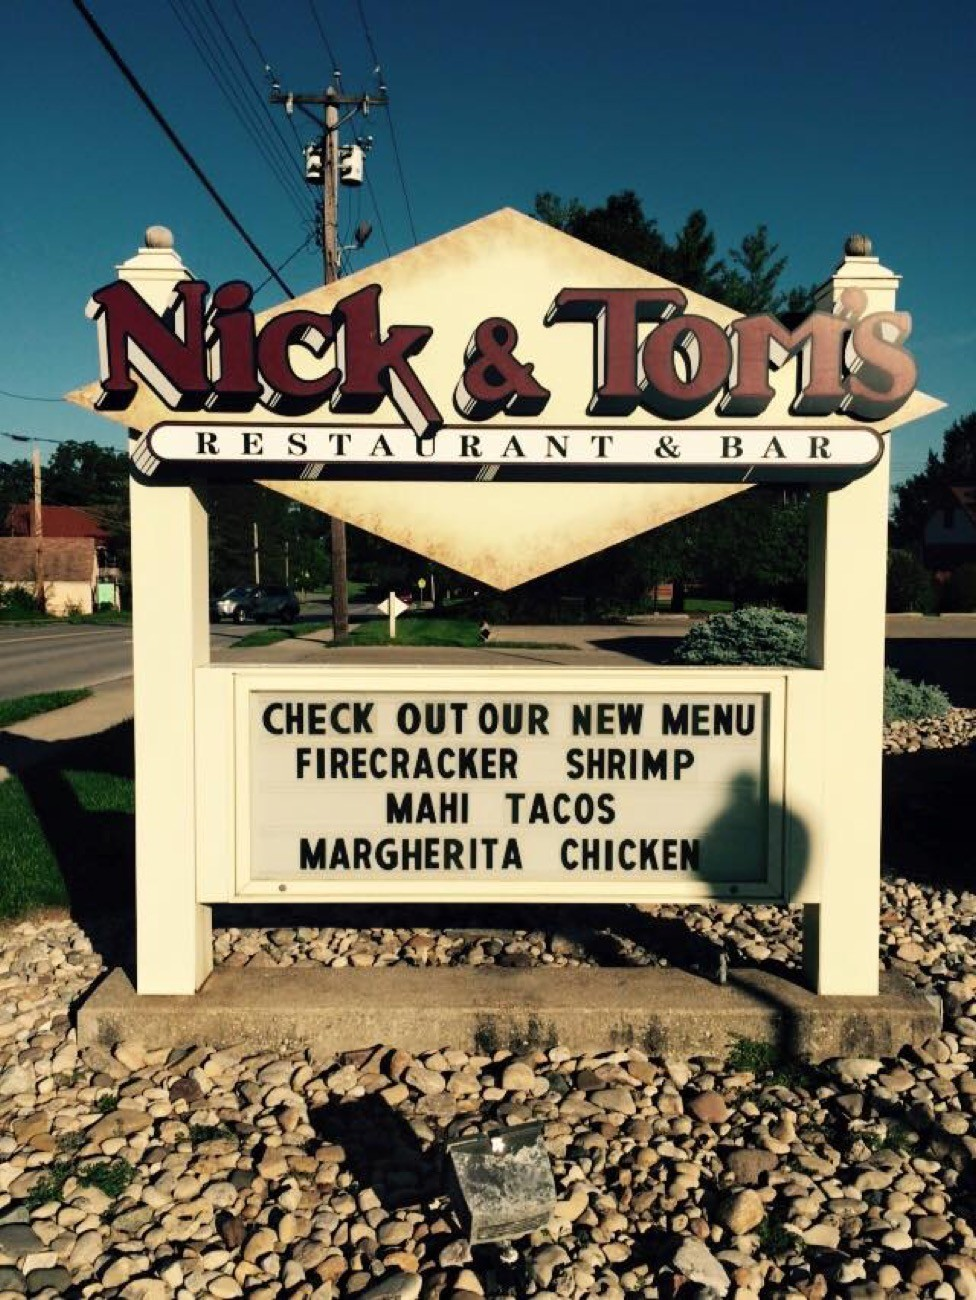 Founded in 1988 as the Alpine Inn, Nick and Tom's has undergone some changes through the years. That includes the addition of menu items like poutine and fish tacos to tried-and-true favorites like bruschetta, filet mignon, pork chops, and fettuccini Alfredo. What's stayed the same is Nick and Tom's charming, unpretentious atmosphere.  ADDRESS: 5774 Bridgetown Road (45248) / Image courtesy of Nick and Tom's // Published: 7.11.18 // Published: 7.11.18